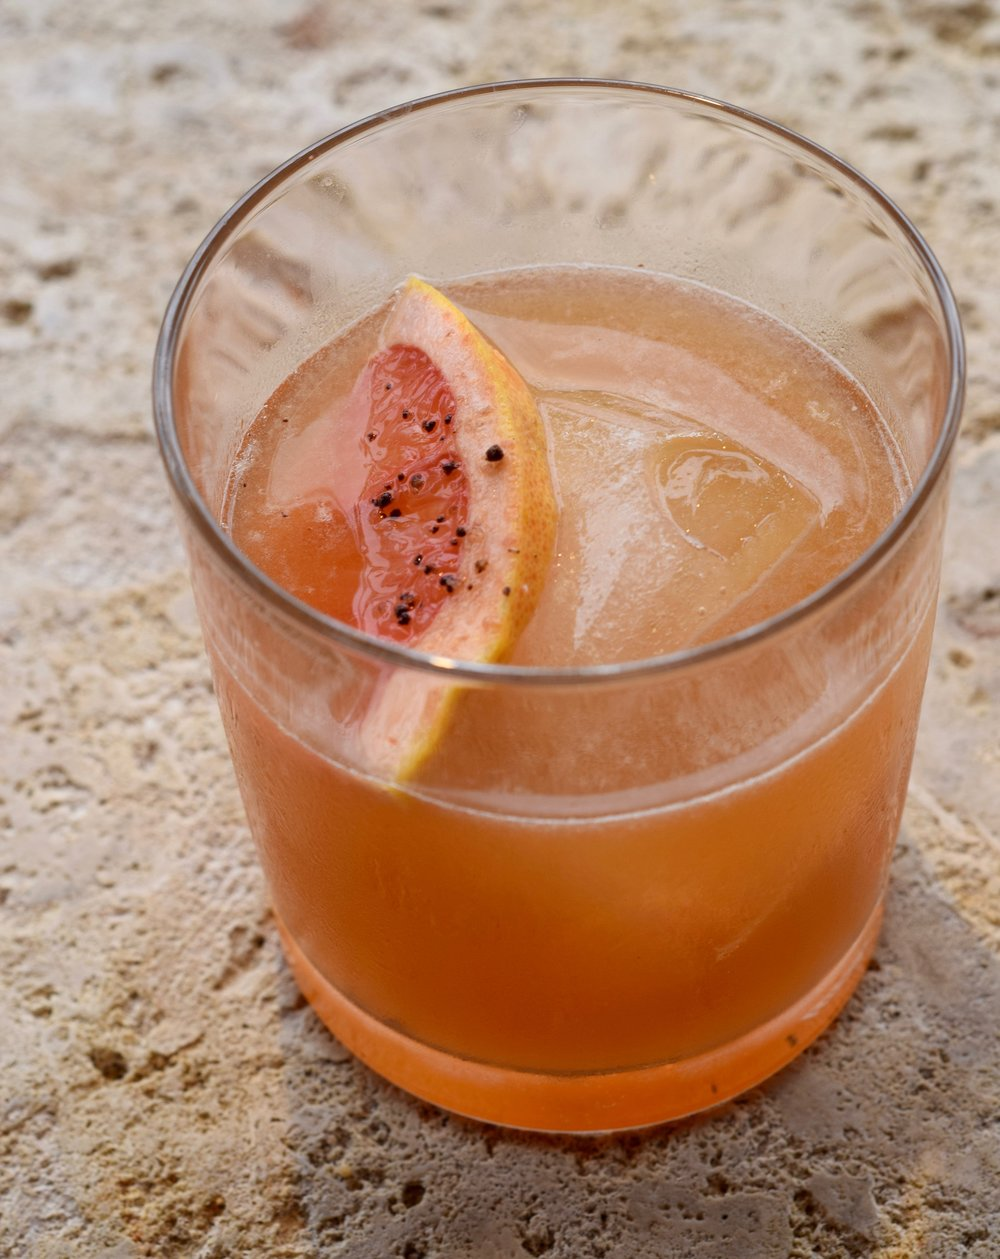 BEAR HUG - 2 oz bourbon1/2 oz nostrum grapefruit piloncillo chipotle shrub1/2 oz fresh lemon juice1/2 oz honey syrup2 dashes angostura bittersdirections: shake with ice and strain.